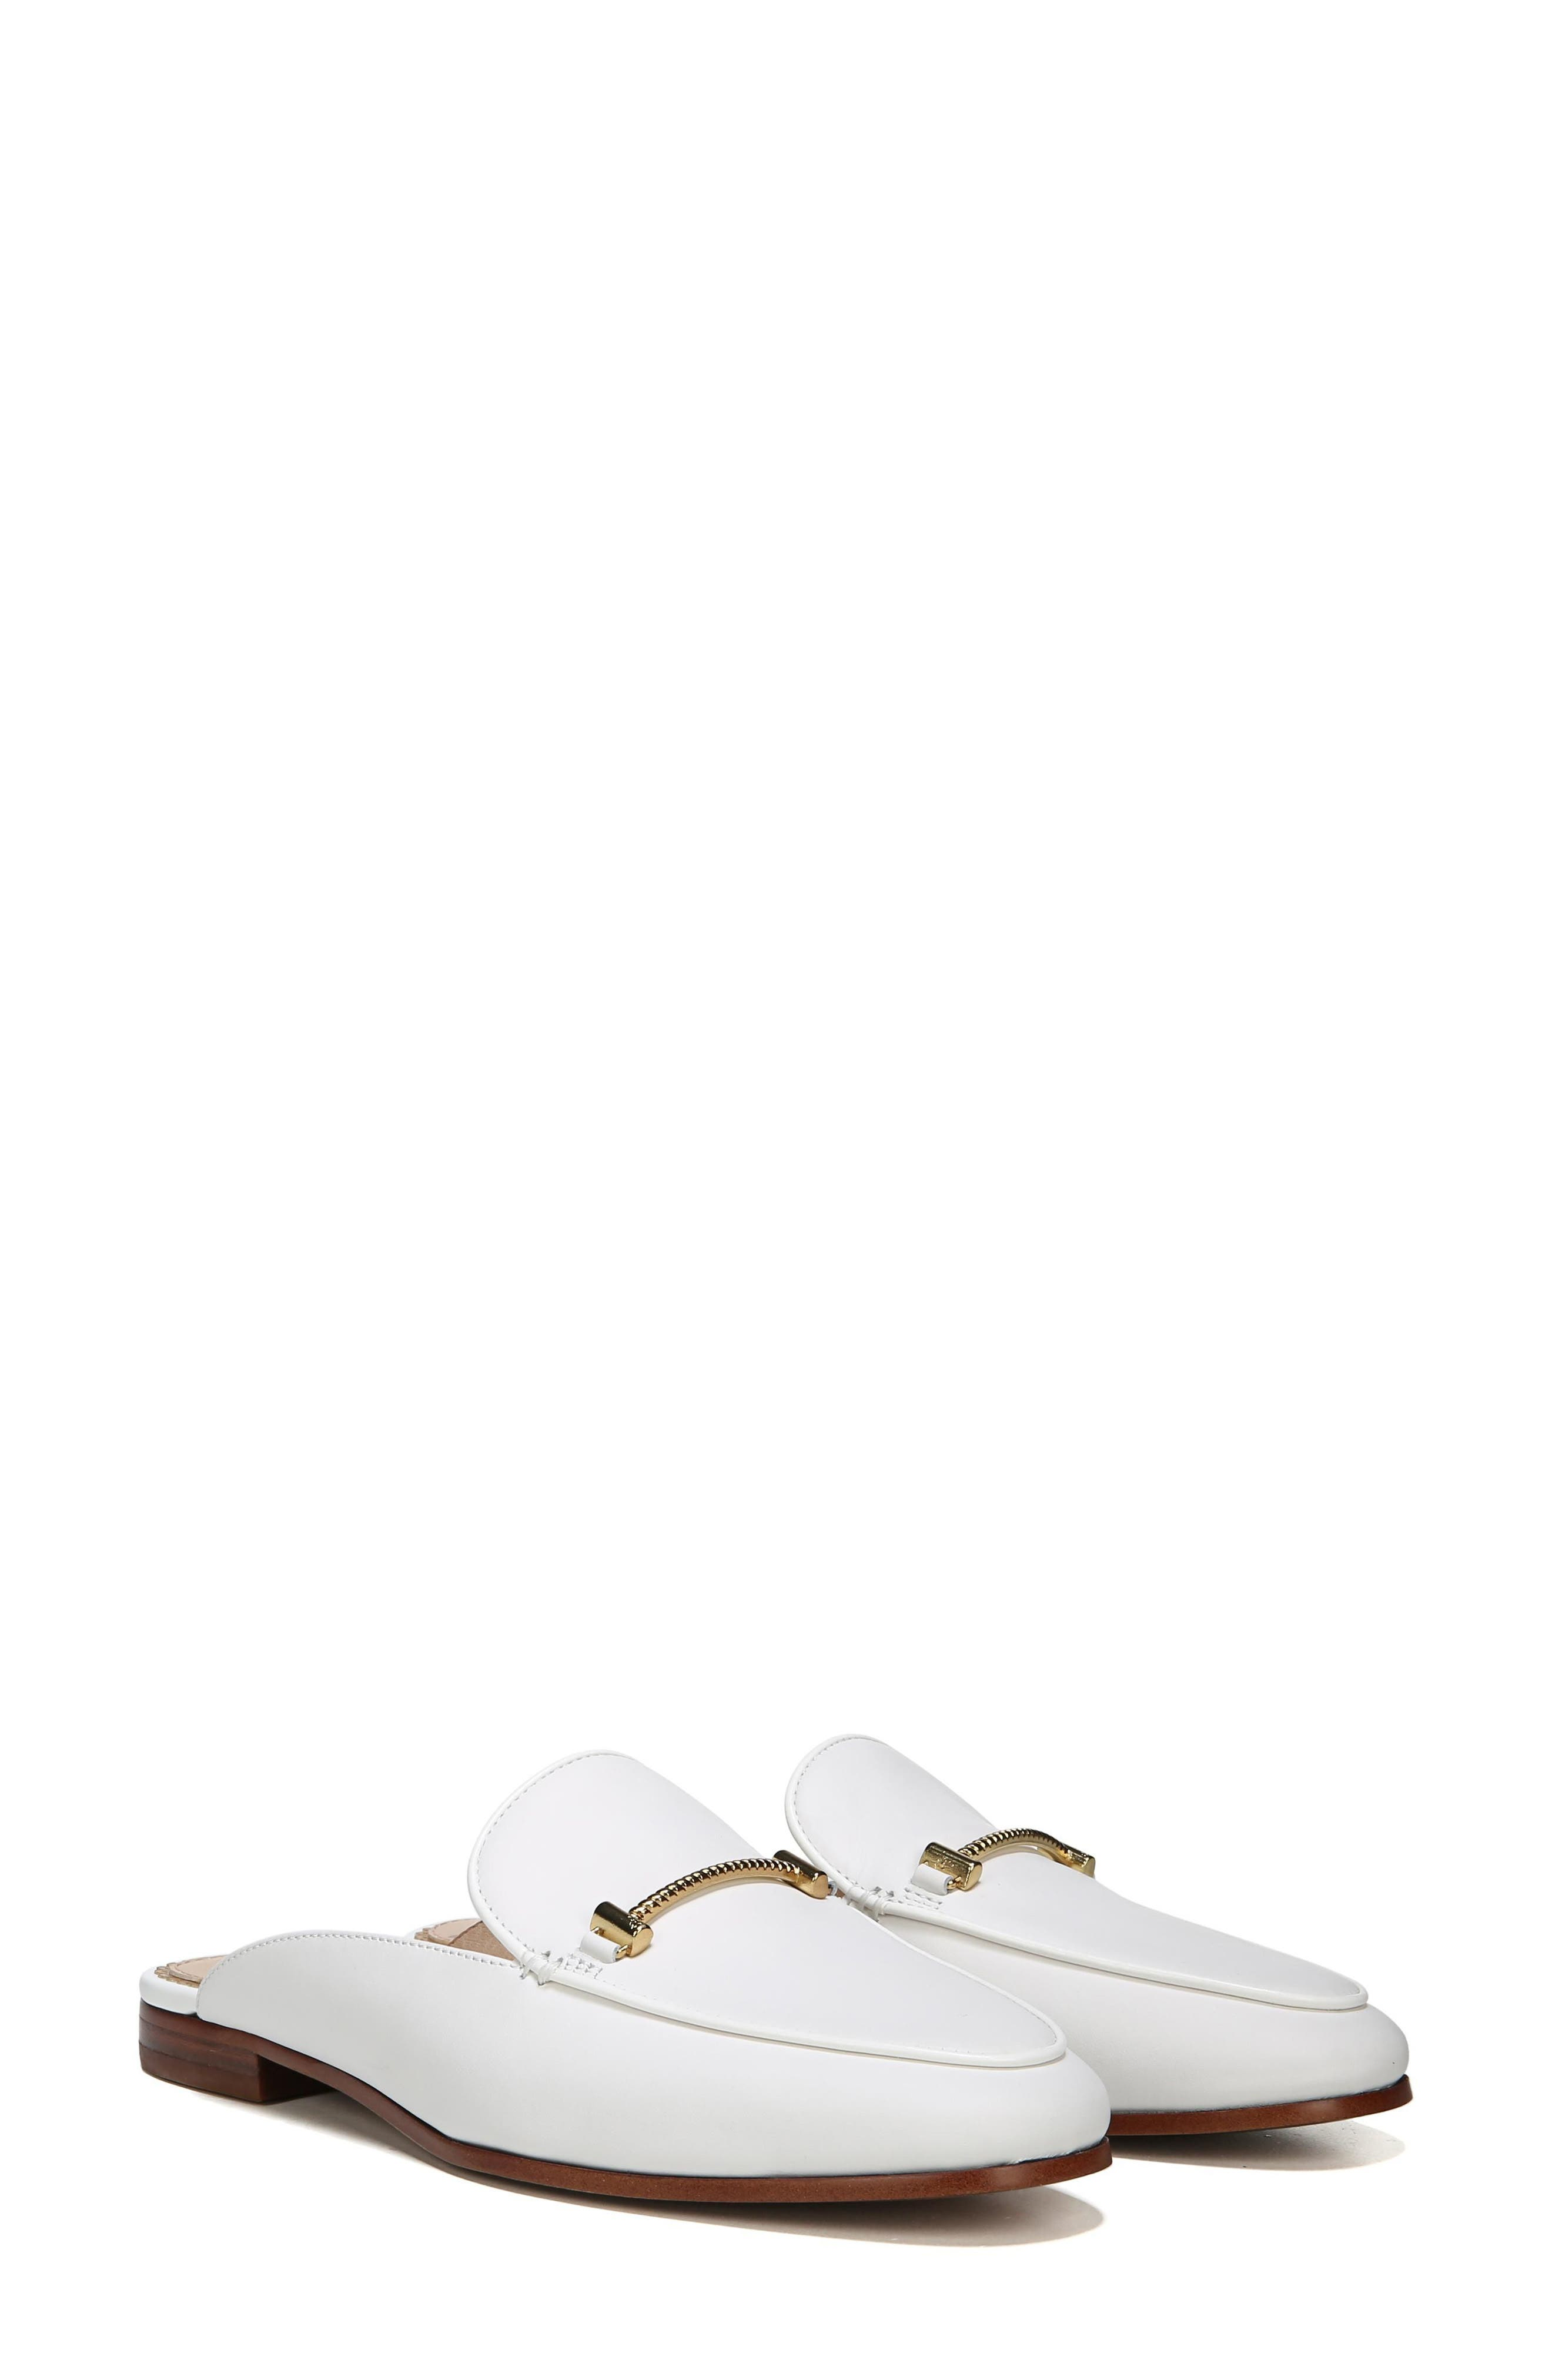 Laurna Mule,                         Main,                         color, BRIGHT WHITE LEATHER